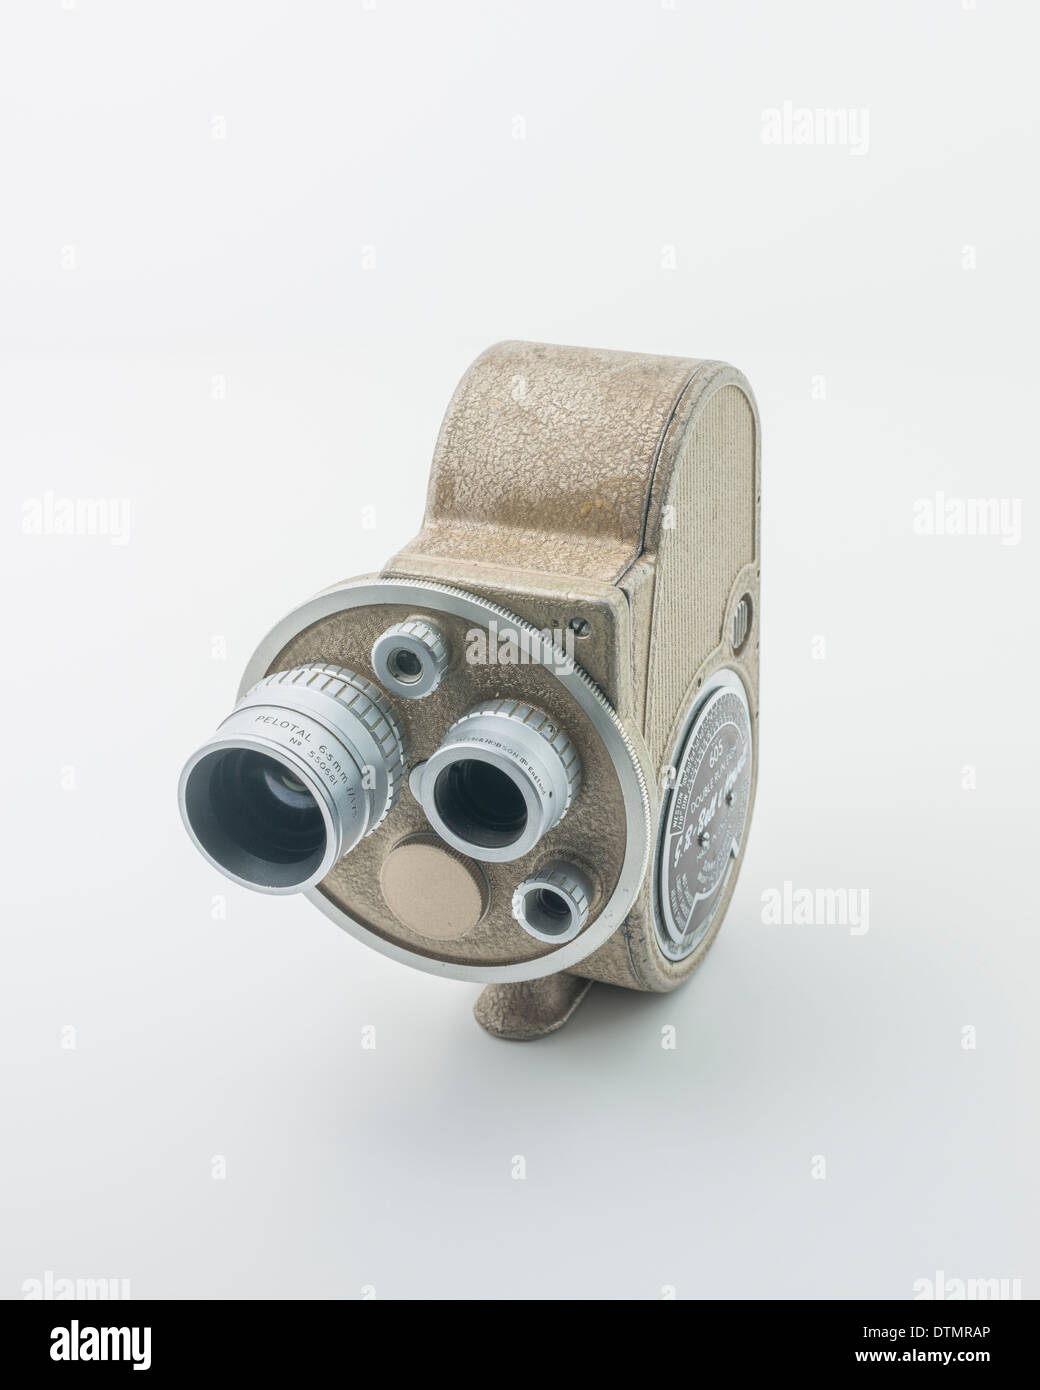 A vintage Cine Camera made by G.B. Bell & Howell Model 605 Double Run Eight Circa 1940's - Stock Image